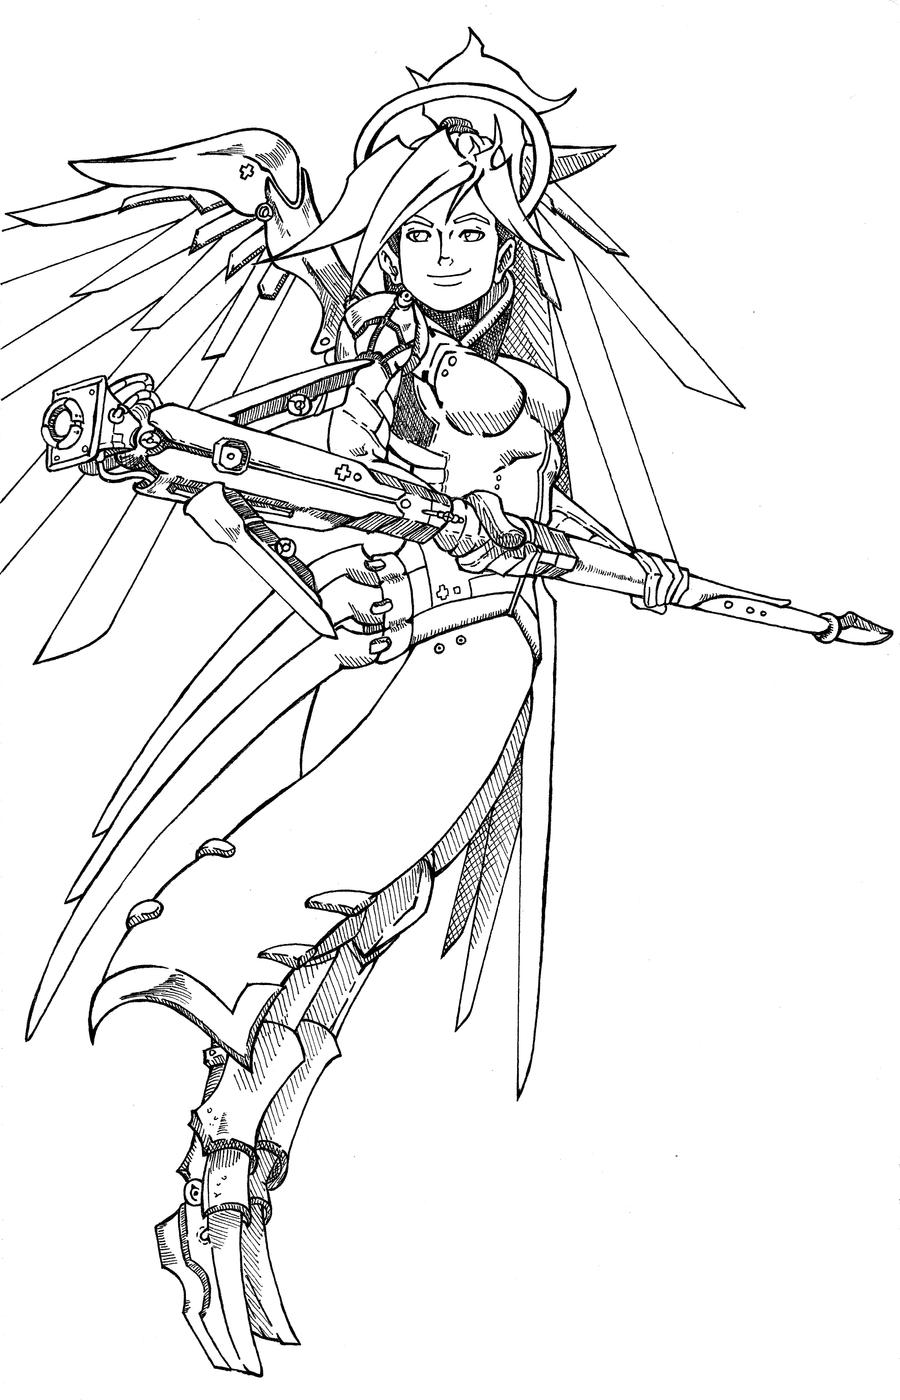 Image Result For Overwatch Reaper Coloring